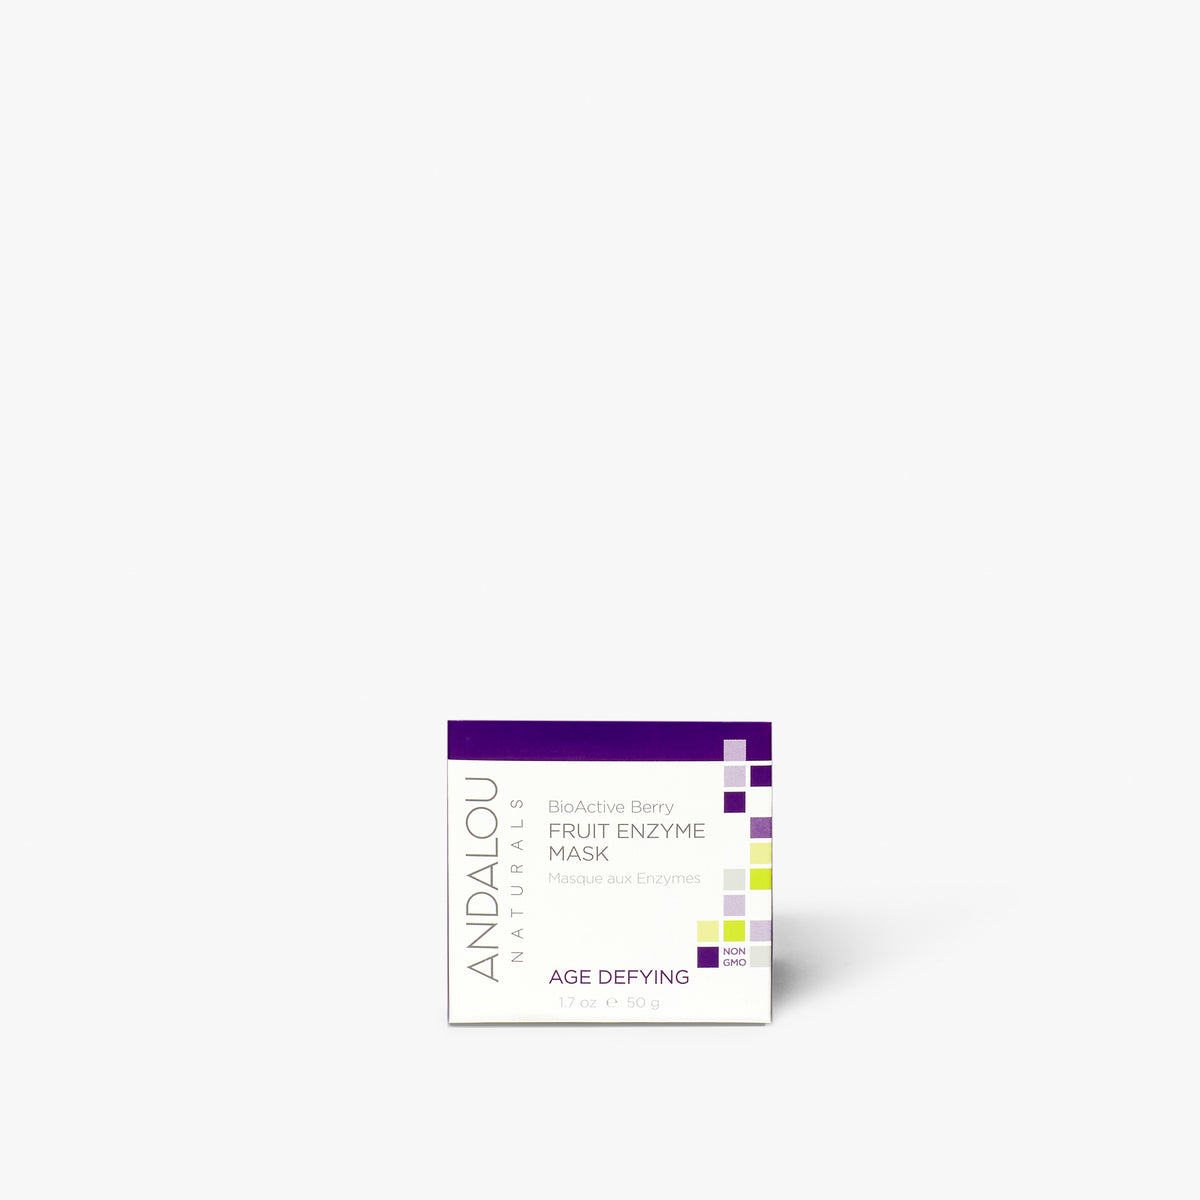 Andalou Naturals Age Defying BioActive Berry Fruit Enzyme Mask box